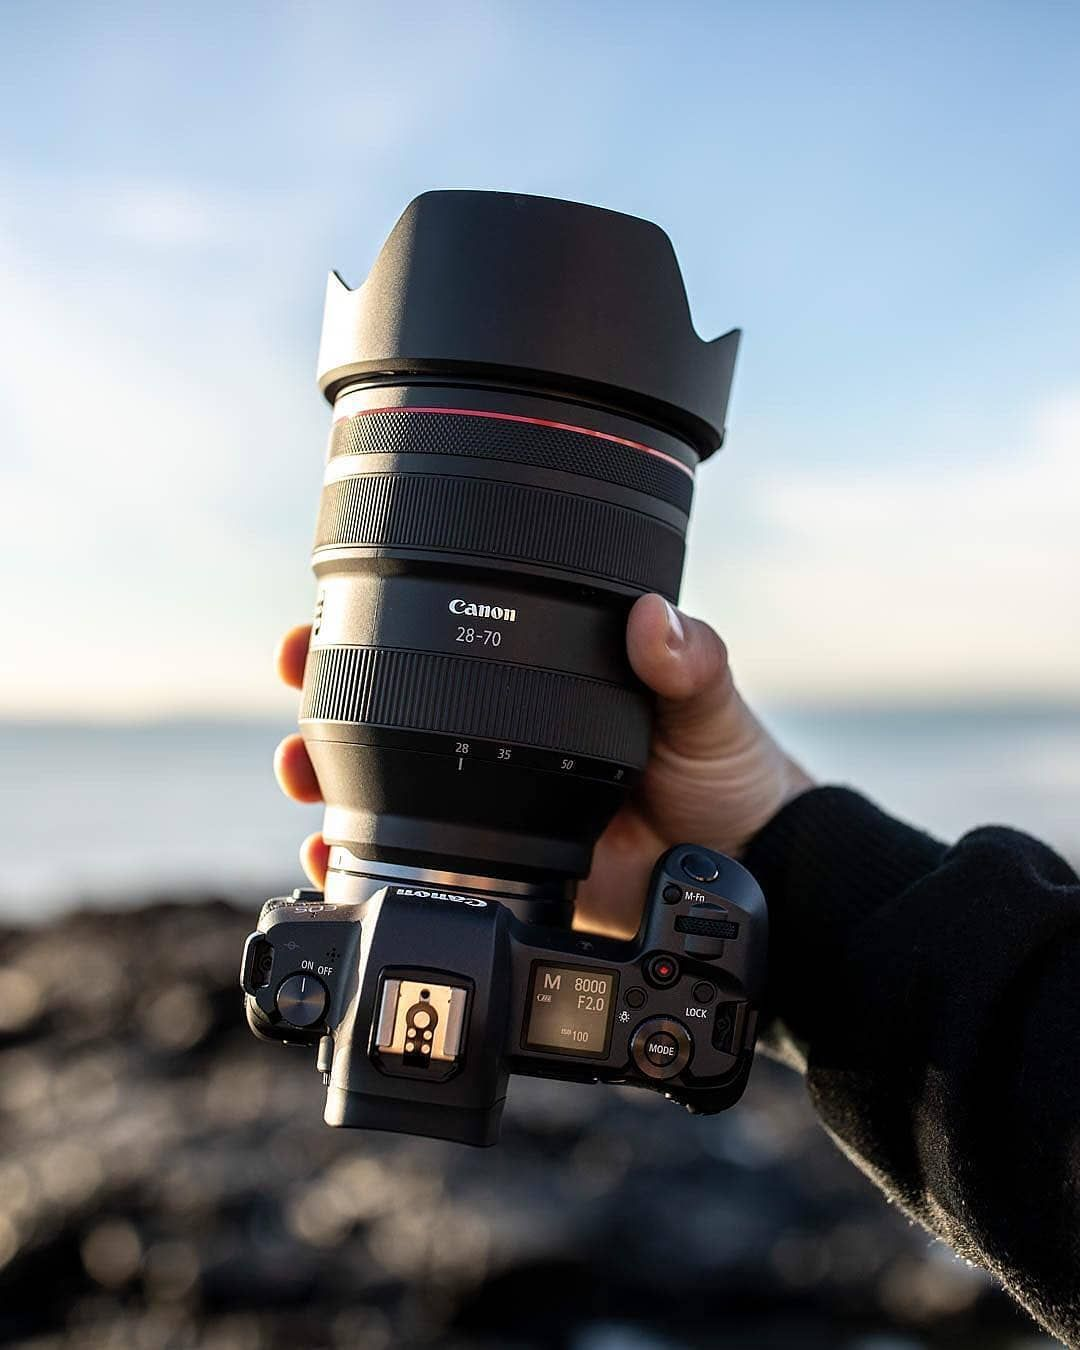 Canon Eos R 28 70mm Photo By Tommytwig Tag A Photographer Canon Camera Photography Dslr Photography Camera Photography